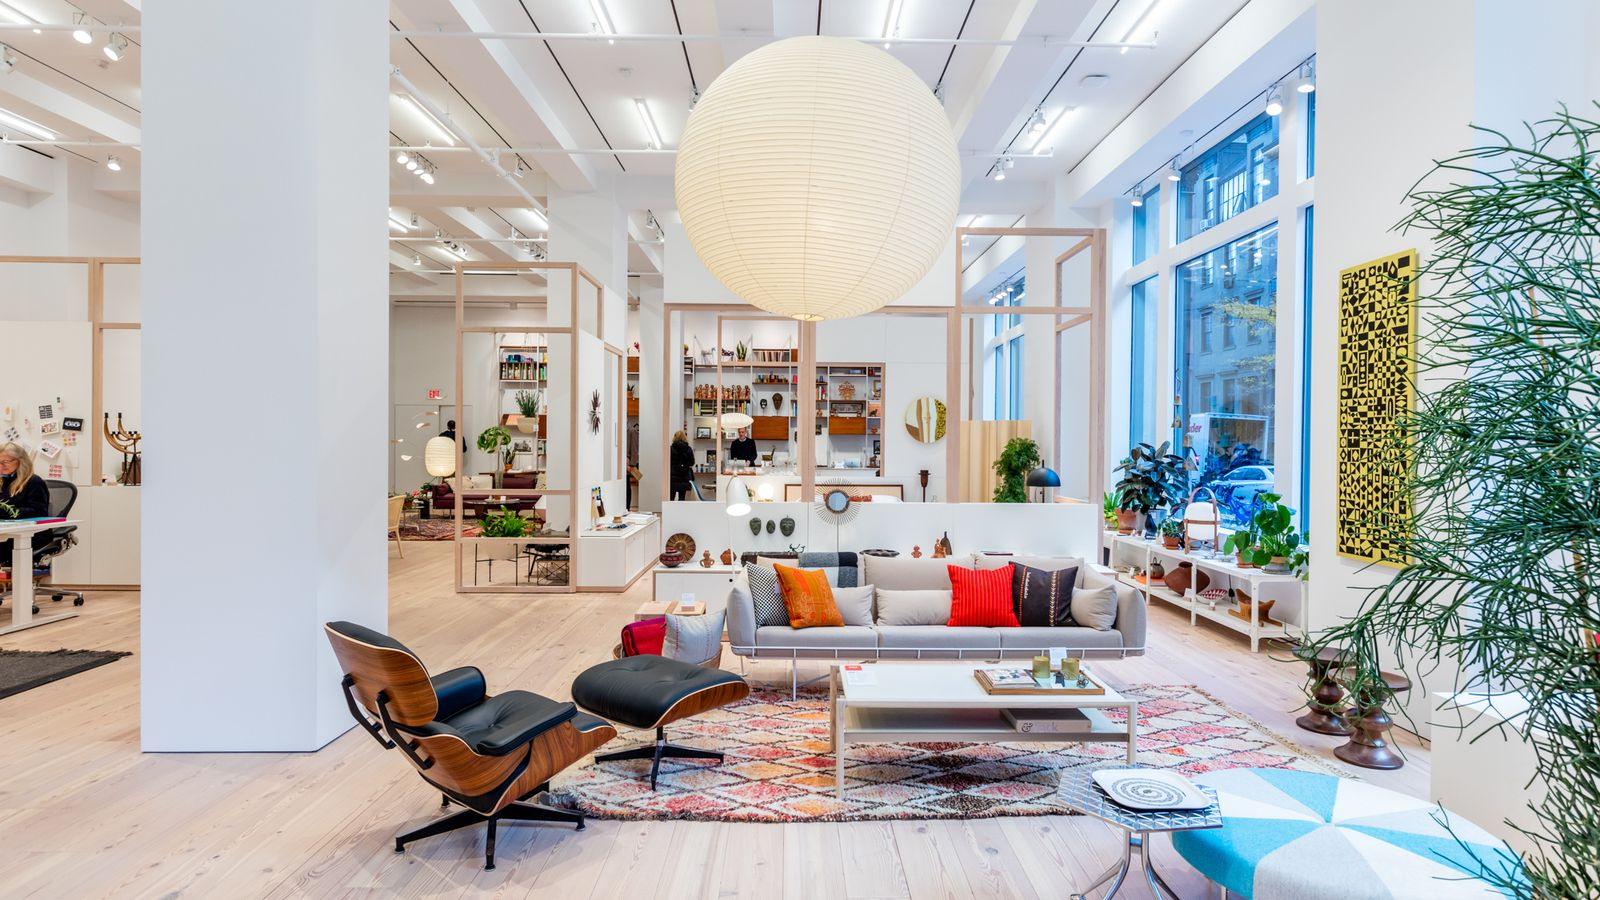 Best home goods and furniture stores in nyc curbed ny for Home good stores nyc